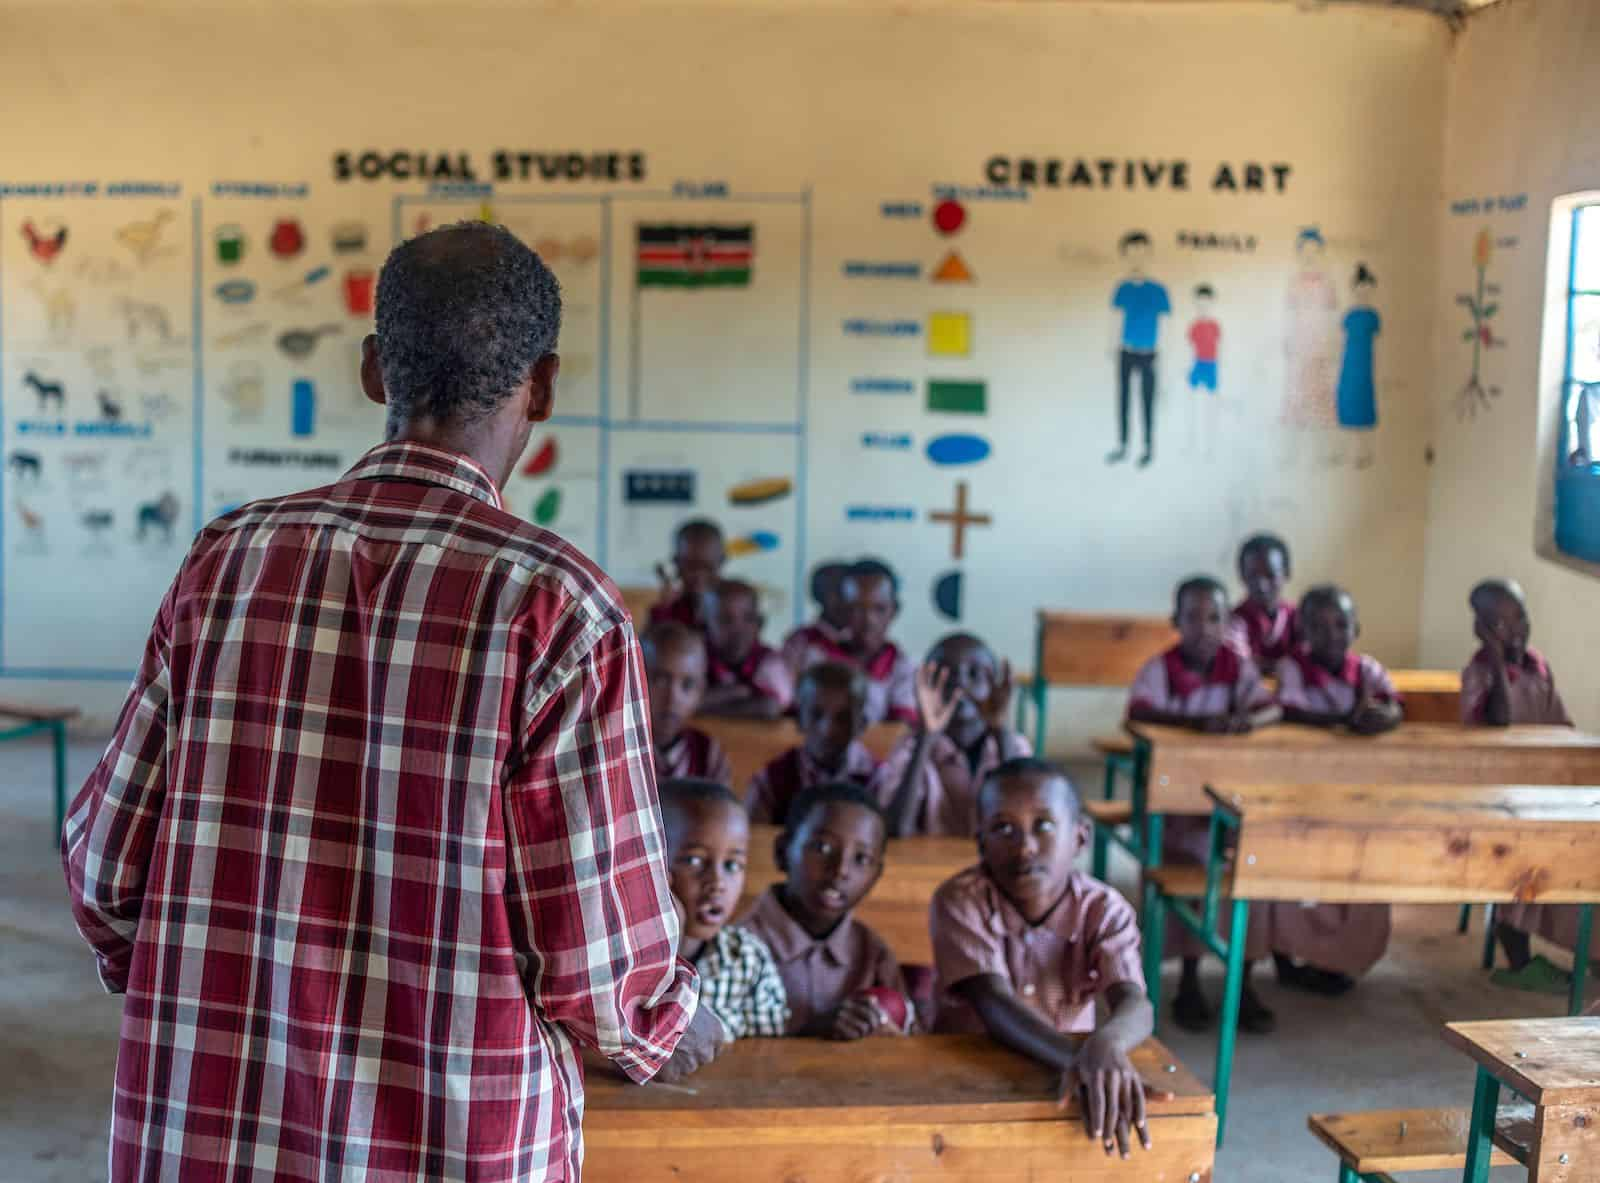 A man in a plaid shirt stands at the front of a classroom, with children wearing red school uniforms sitting at desks and listening.